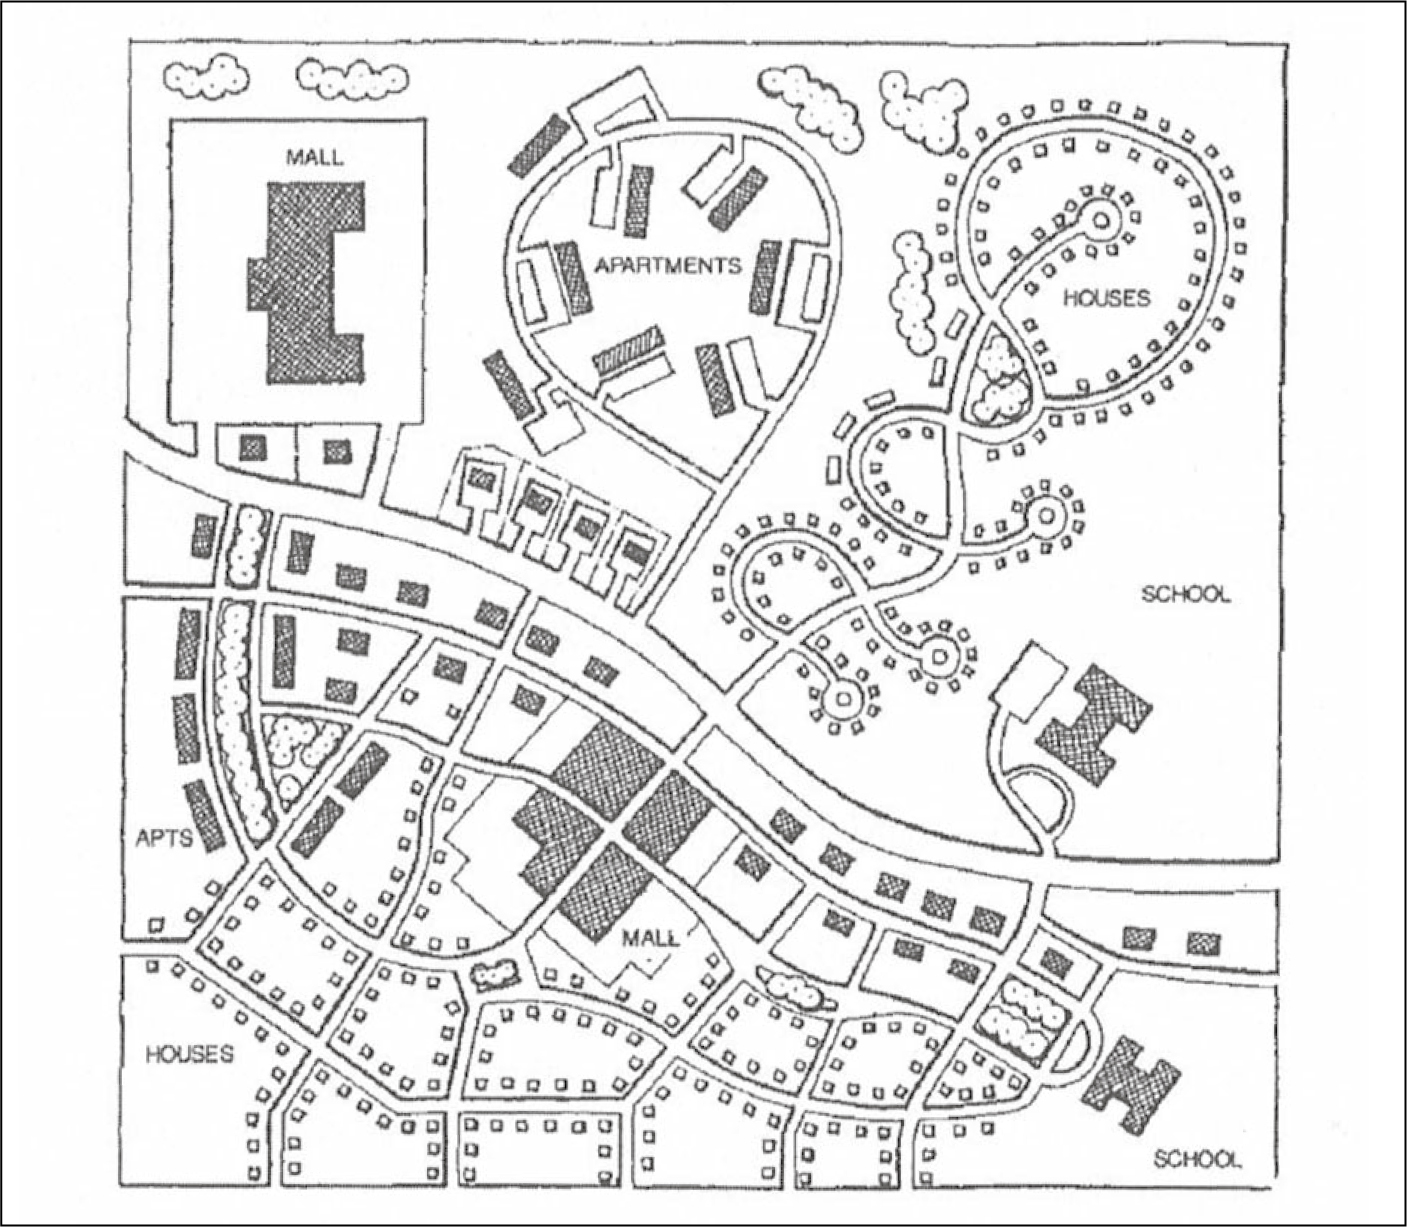 """An Illustration of the Concept of a """"sprawled"""" Neighborhood (upper) and """"traditional"""" Neighborhood. Note that Streets Tend to Connect to Each Other, and Land Use Is Mixed in the Traditional Neighborhood. Figure 1 from """"The Traditional Neighborhood Development: How Will Traffic Engineers Respond?""""pages 17–18, ITE Journal. September 1989. Copyright 1989. Institute of Transportation Engineers, 1099 14th Street, NW, Suite 300 West, Washington, DC 20005-3438 USA, www.ite.org. Used by Permission."""